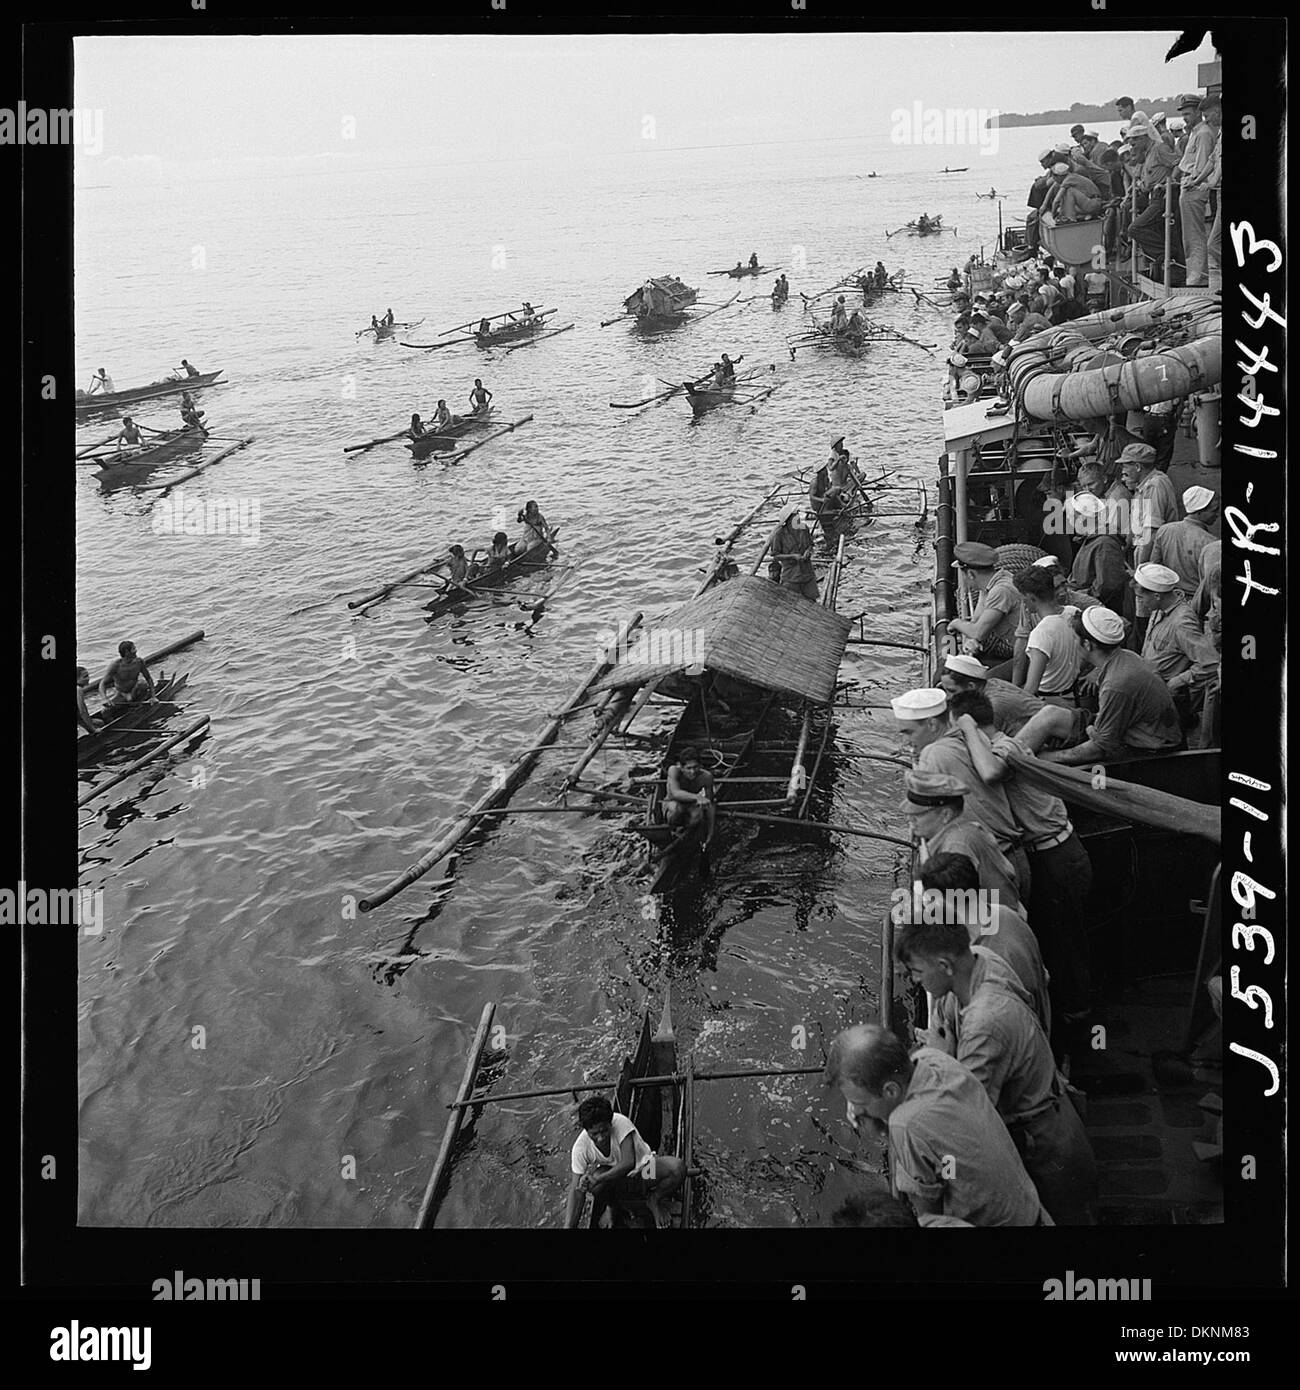 Filipinos with their 'bancas' loaded with wares, paddle out to anchored destroyer to trade with crew. 520952 - Stock Image